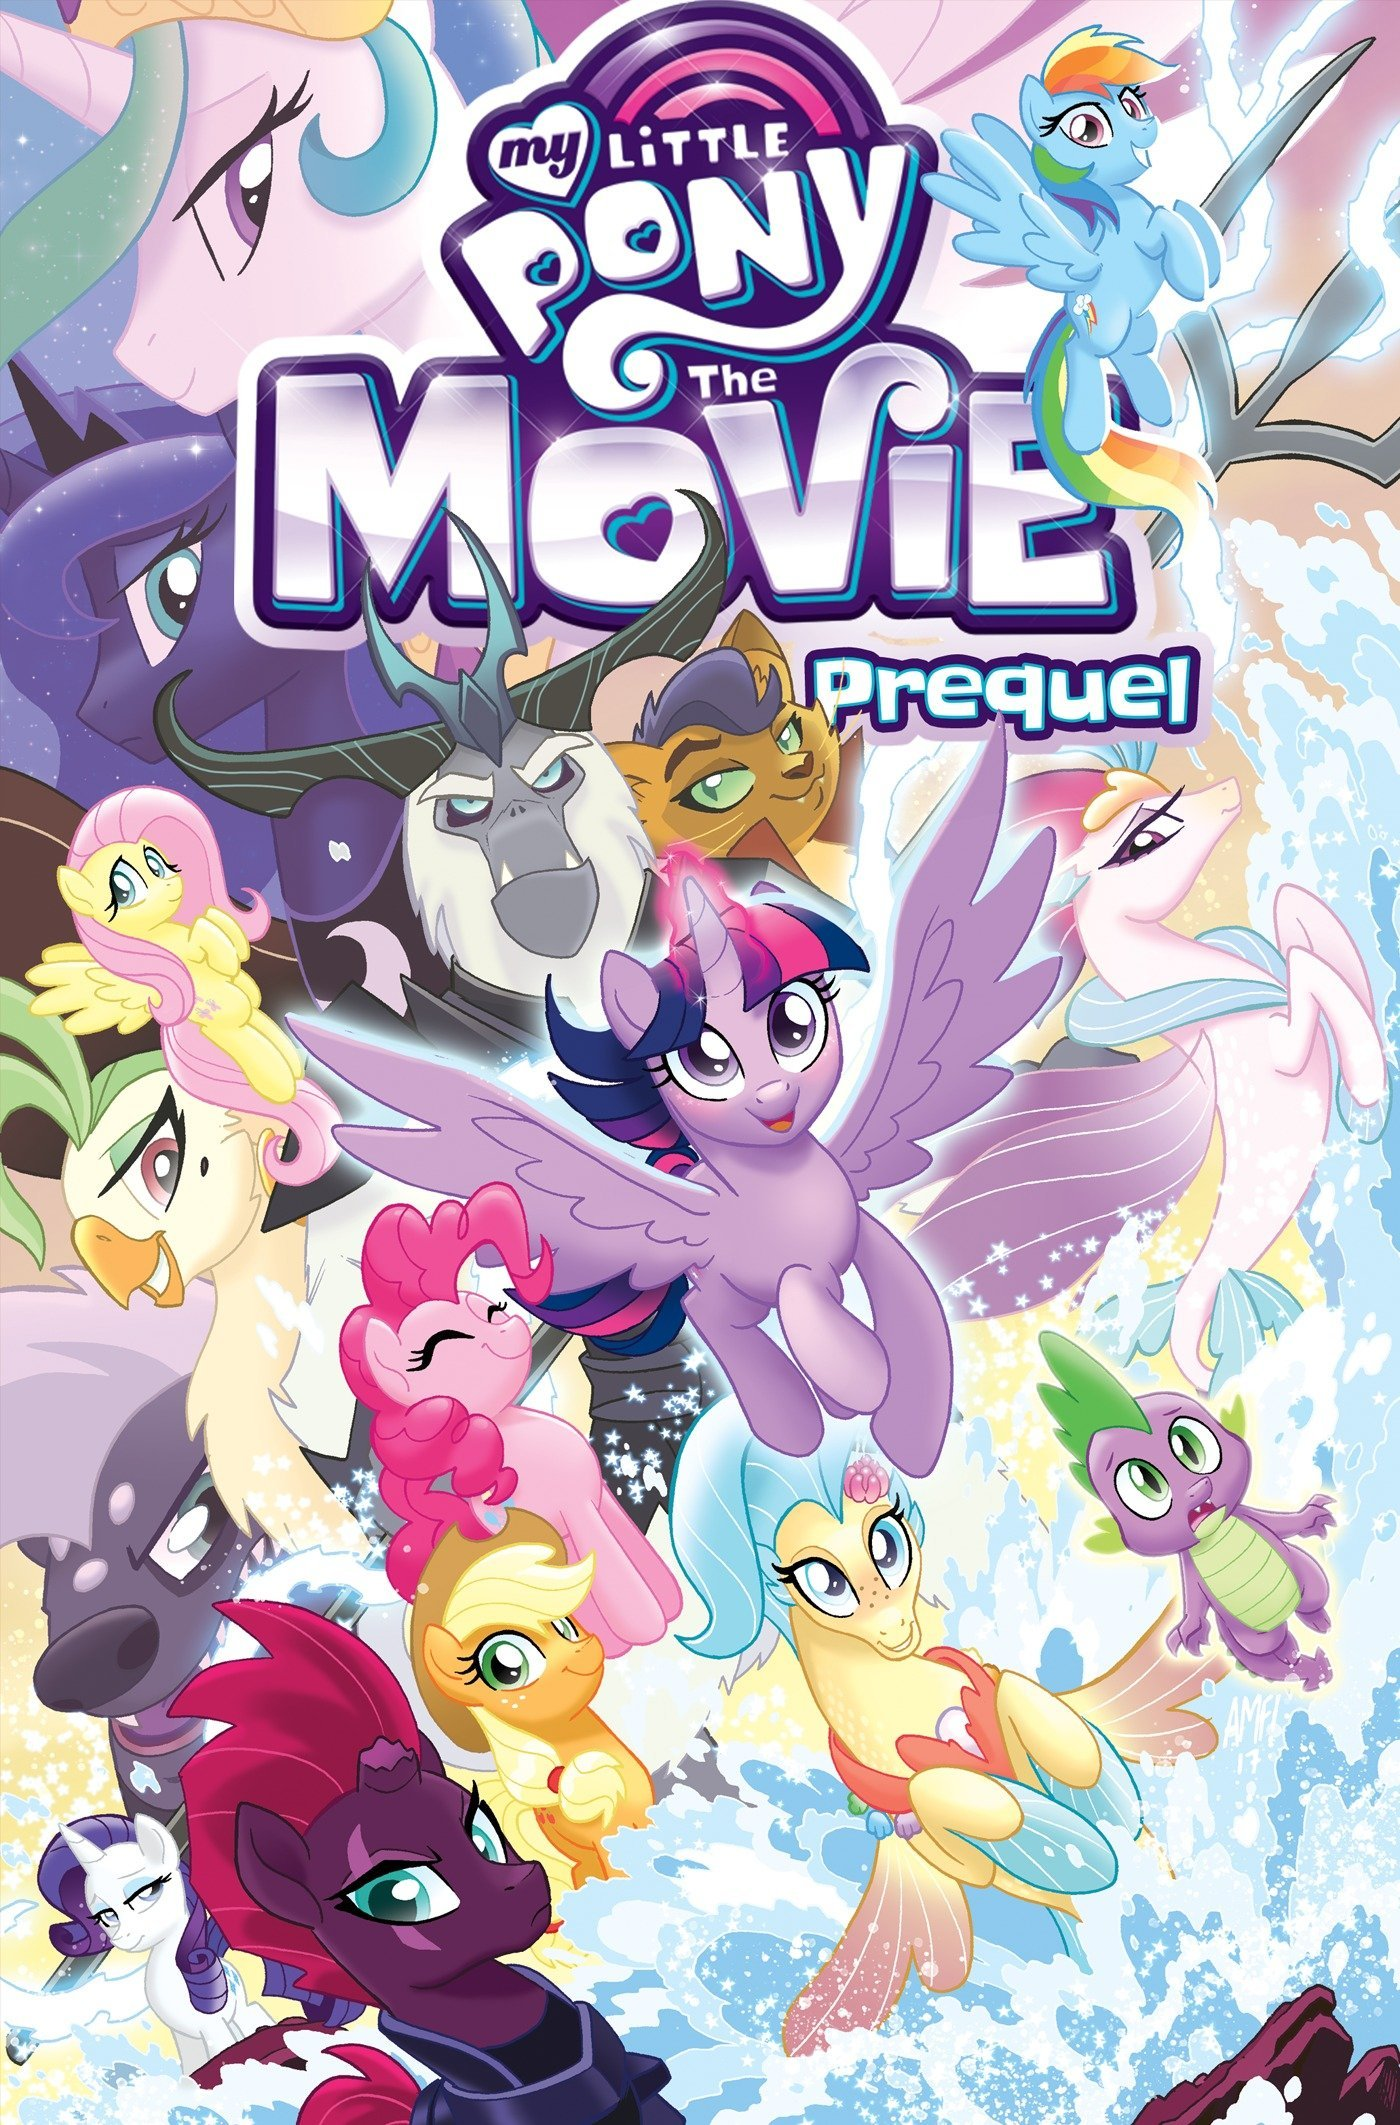 Amazon Com My Little Pony The Movie Prequel Mlp The Movie 9781684051076 Anderson Ted Price Andy Books